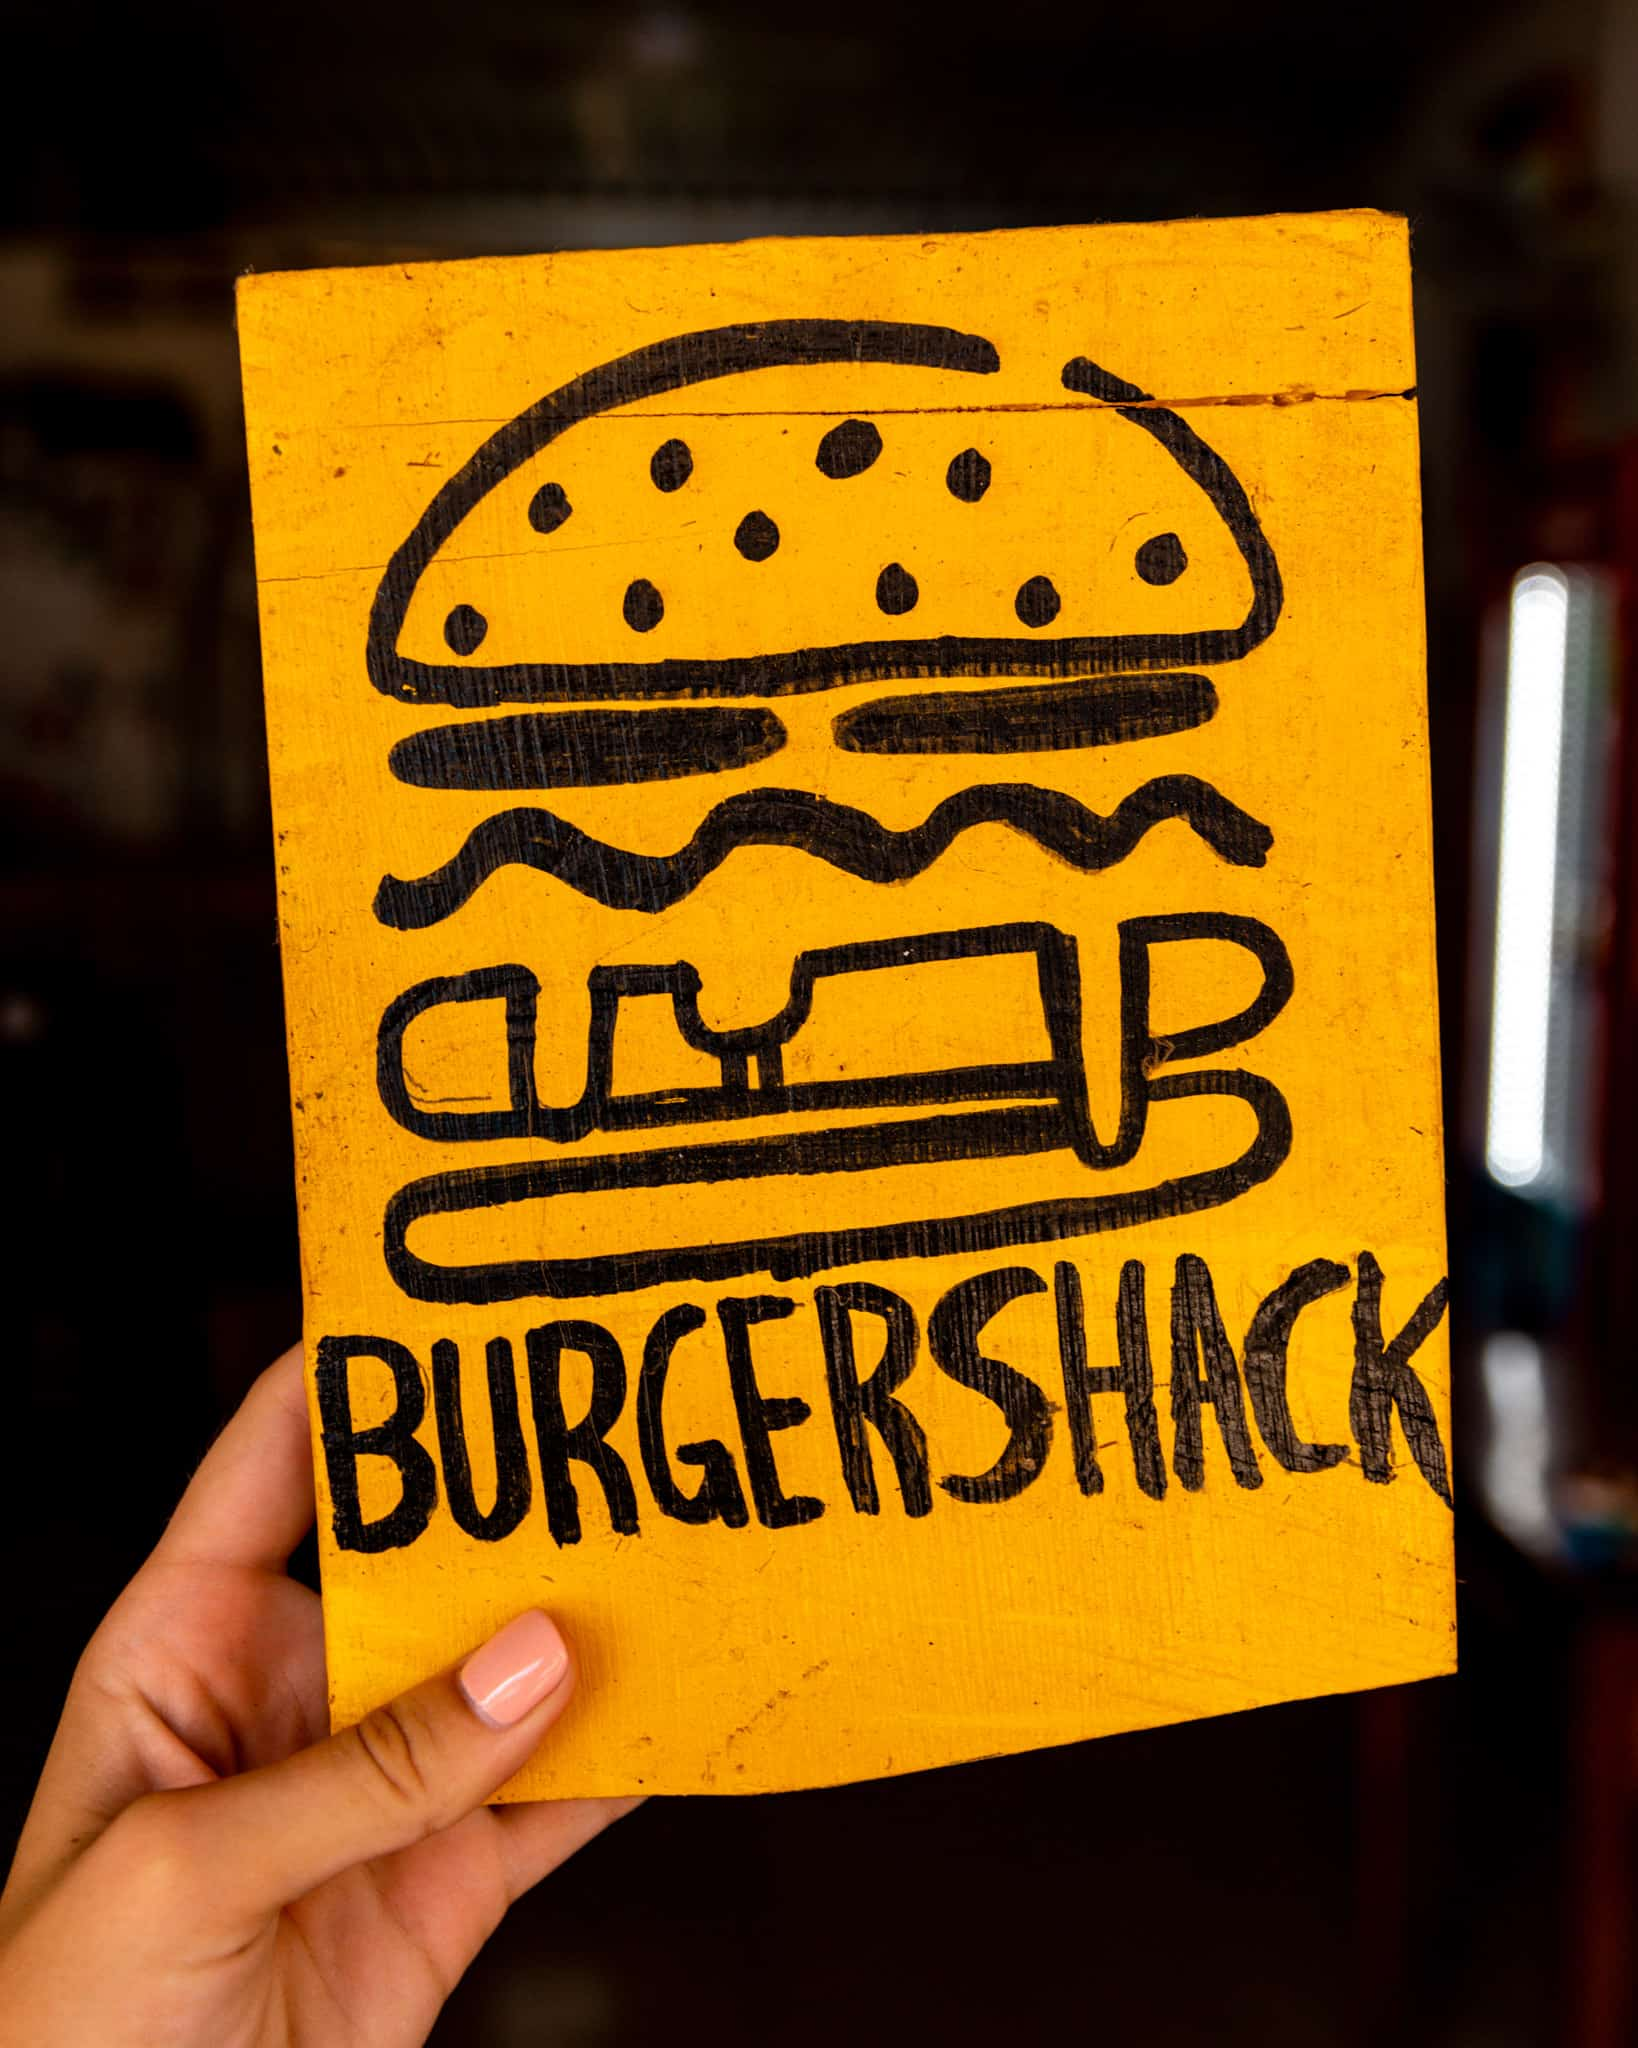 Burgershack sign